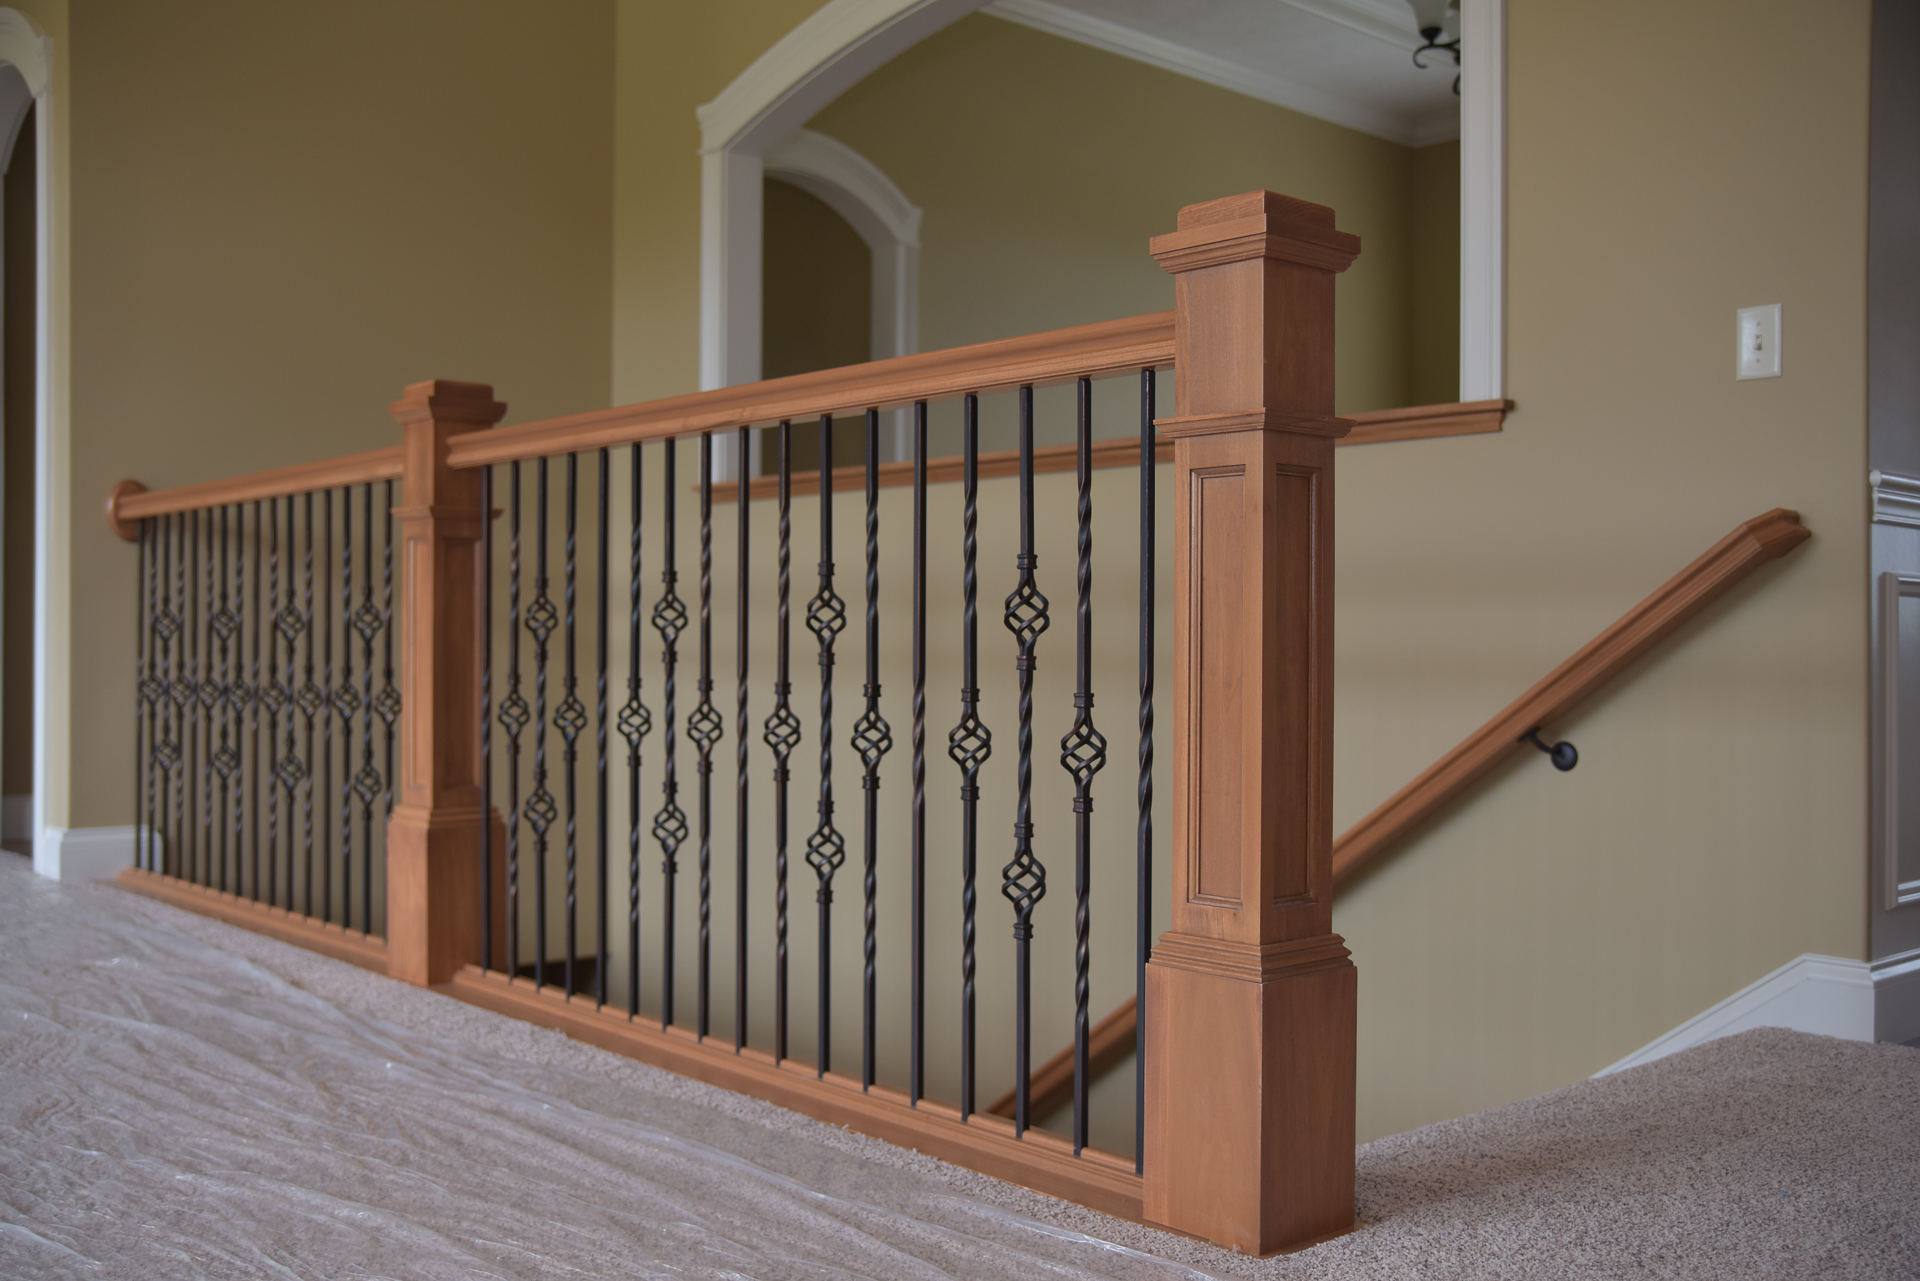 Stained railings & stained flat-panel box newels, Oil Rubbed Bronze balusters: single twist + single basket + double basket + single basket + repeat